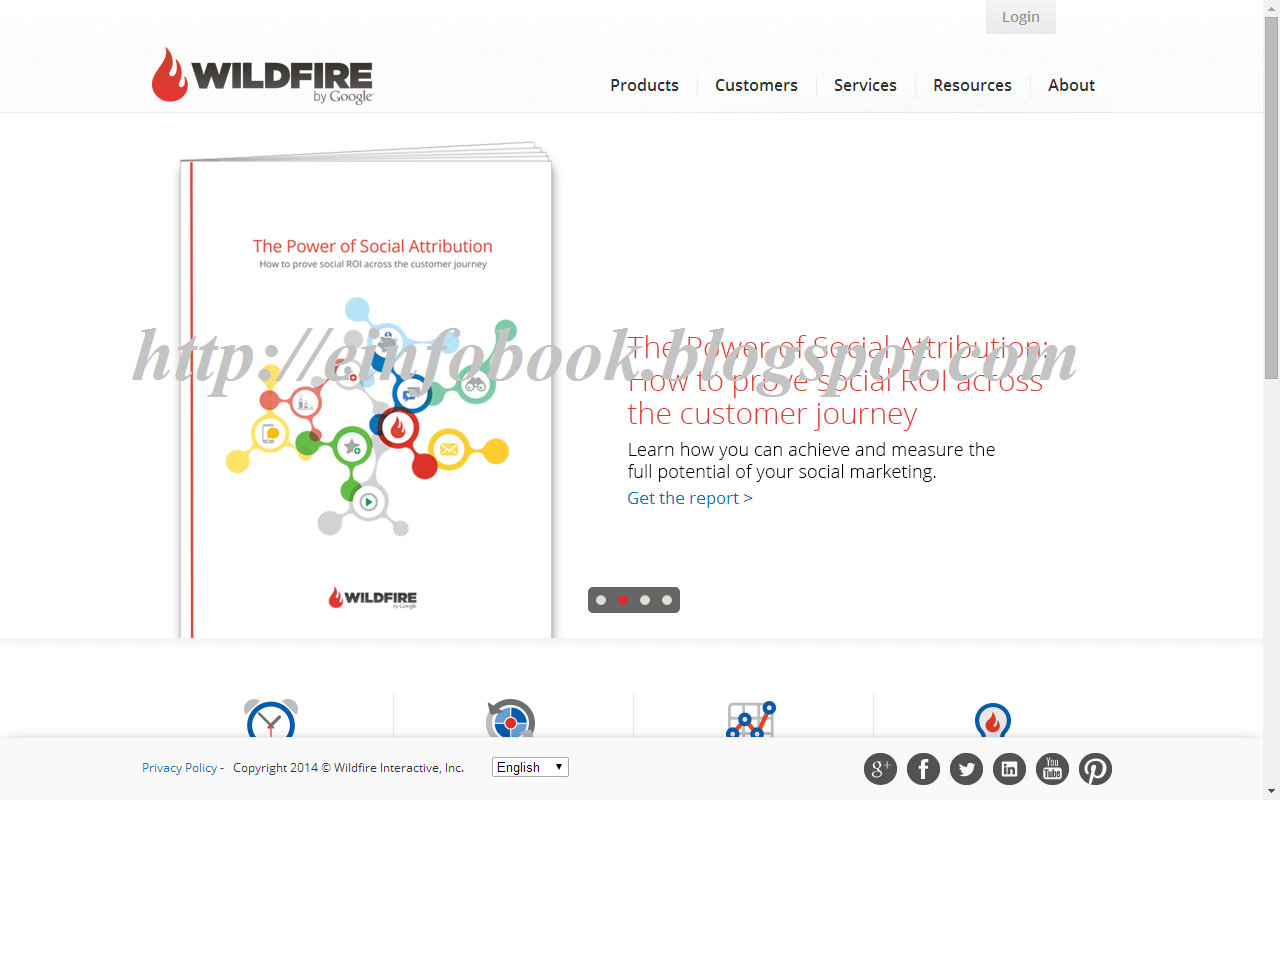 E info Book Google wildfire